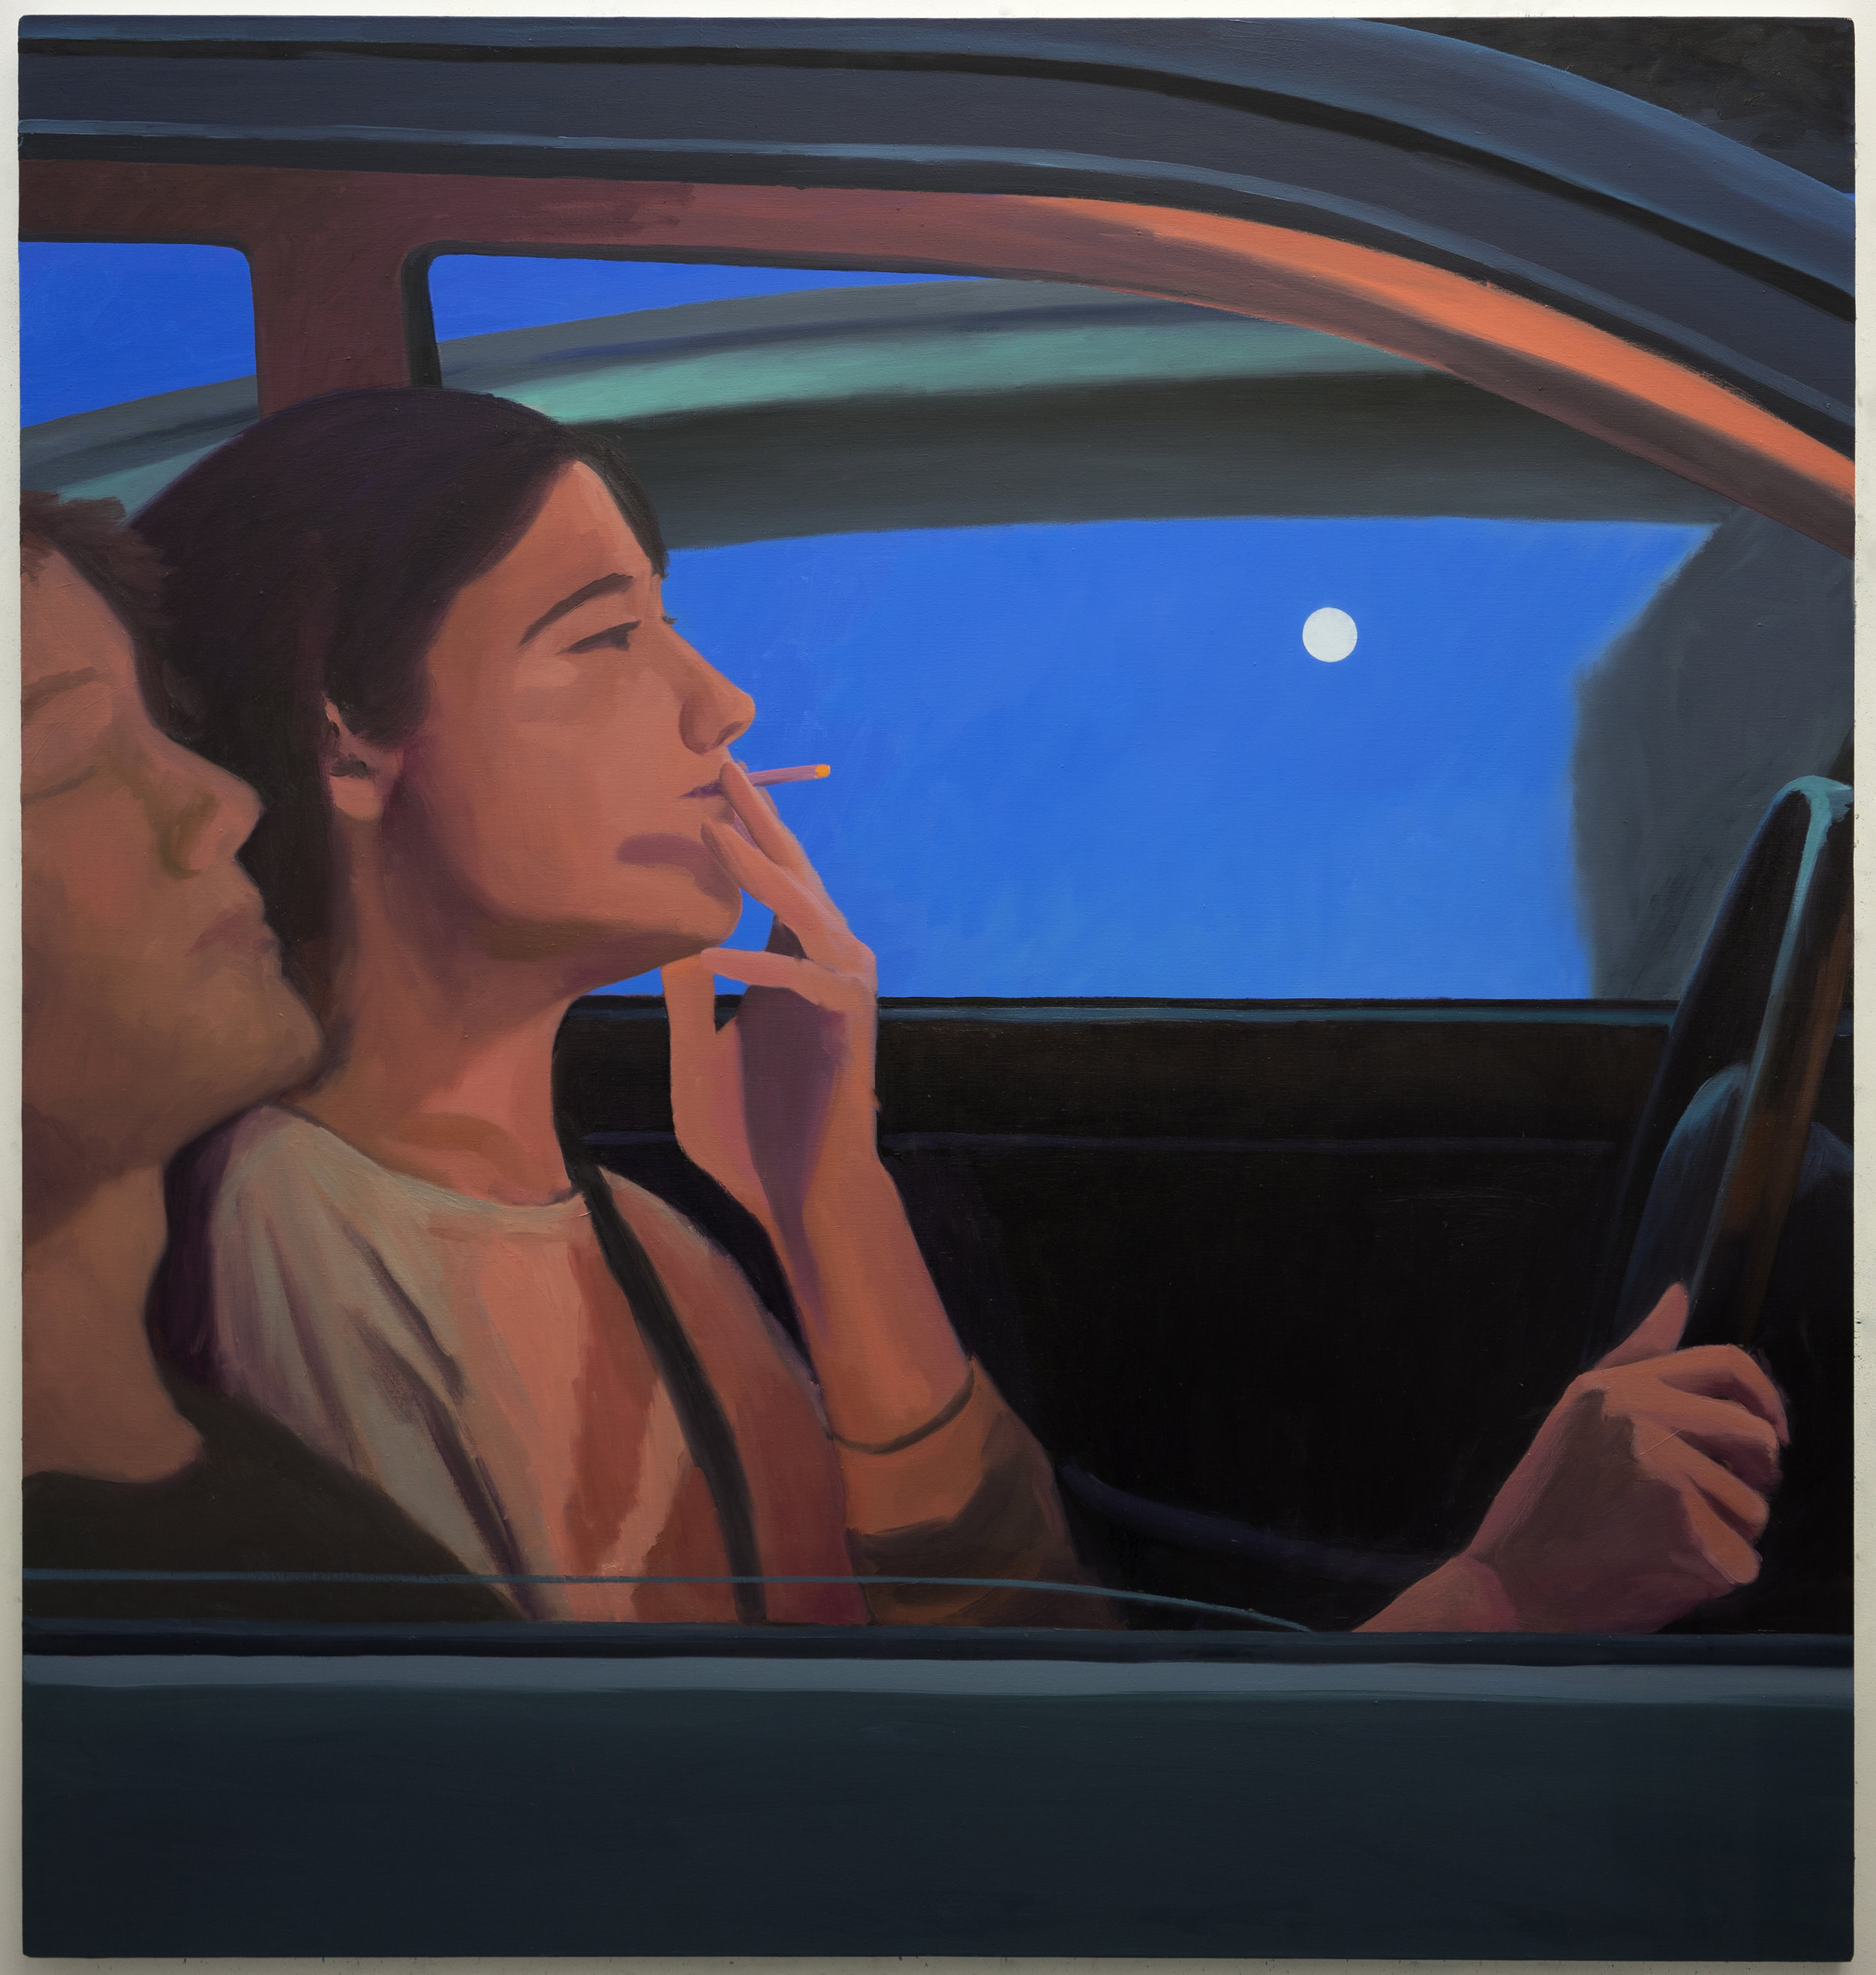 Night Drive  Oil on linen  170 x 160 cm  2019